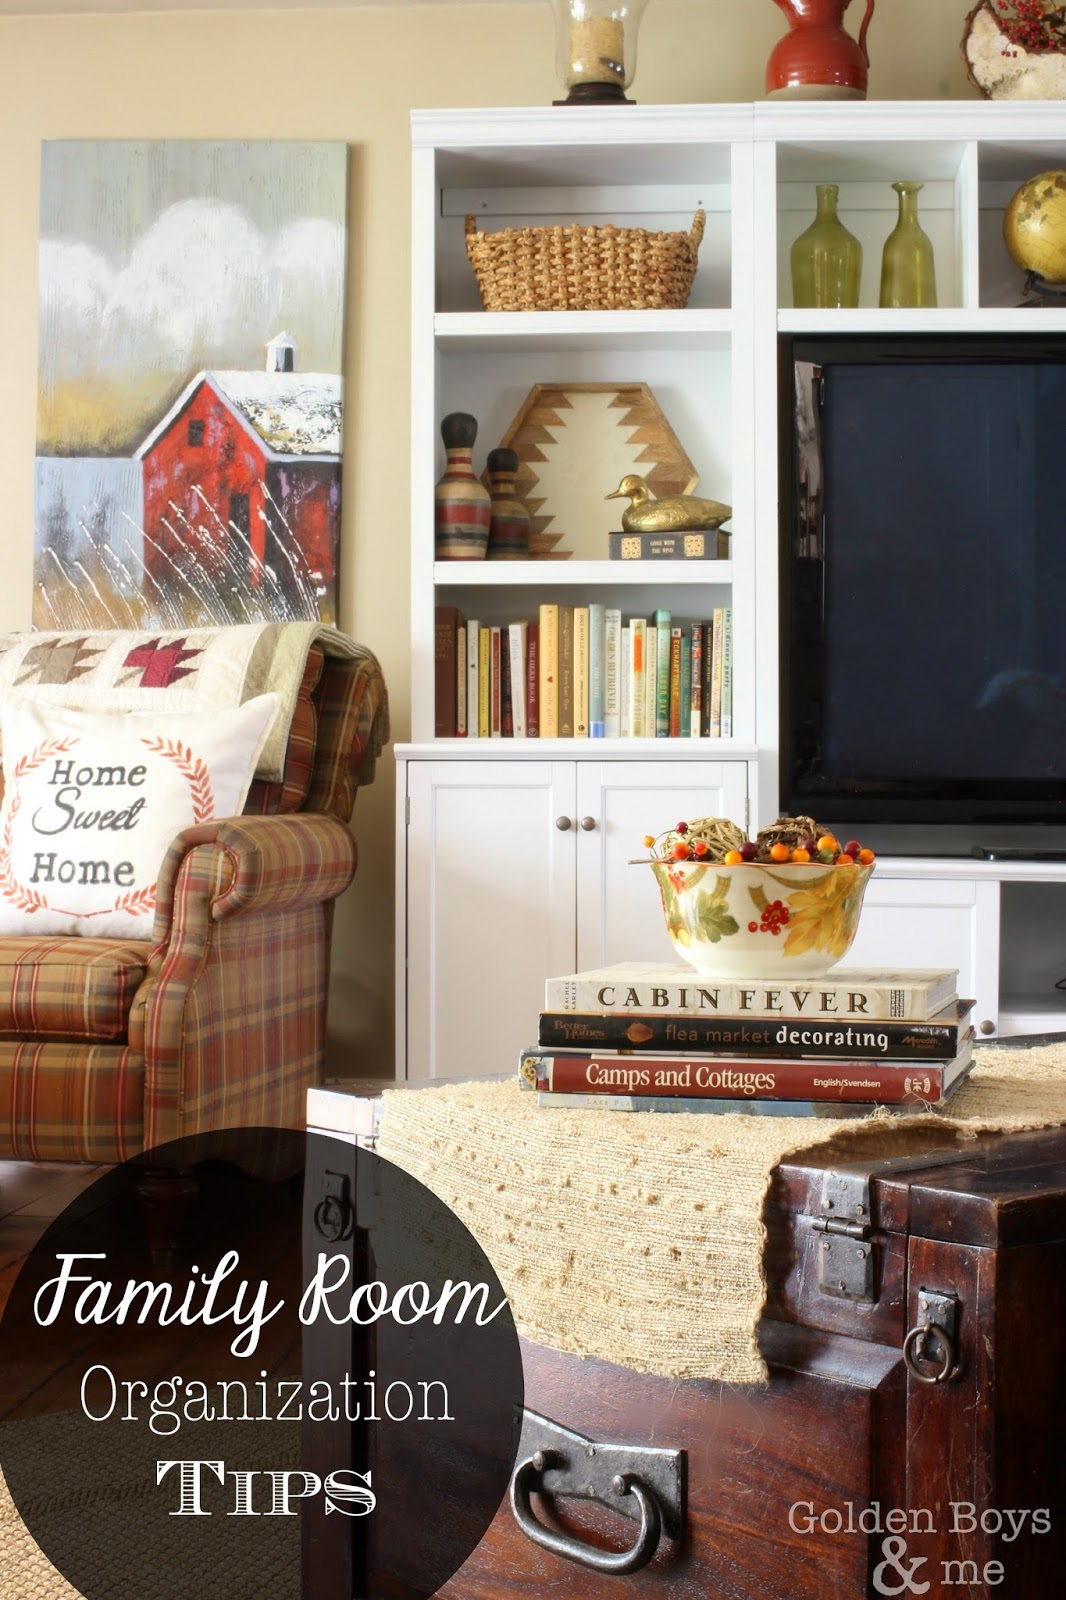 Family Room Storage And Organization Tips Www.goldenboysandme.com